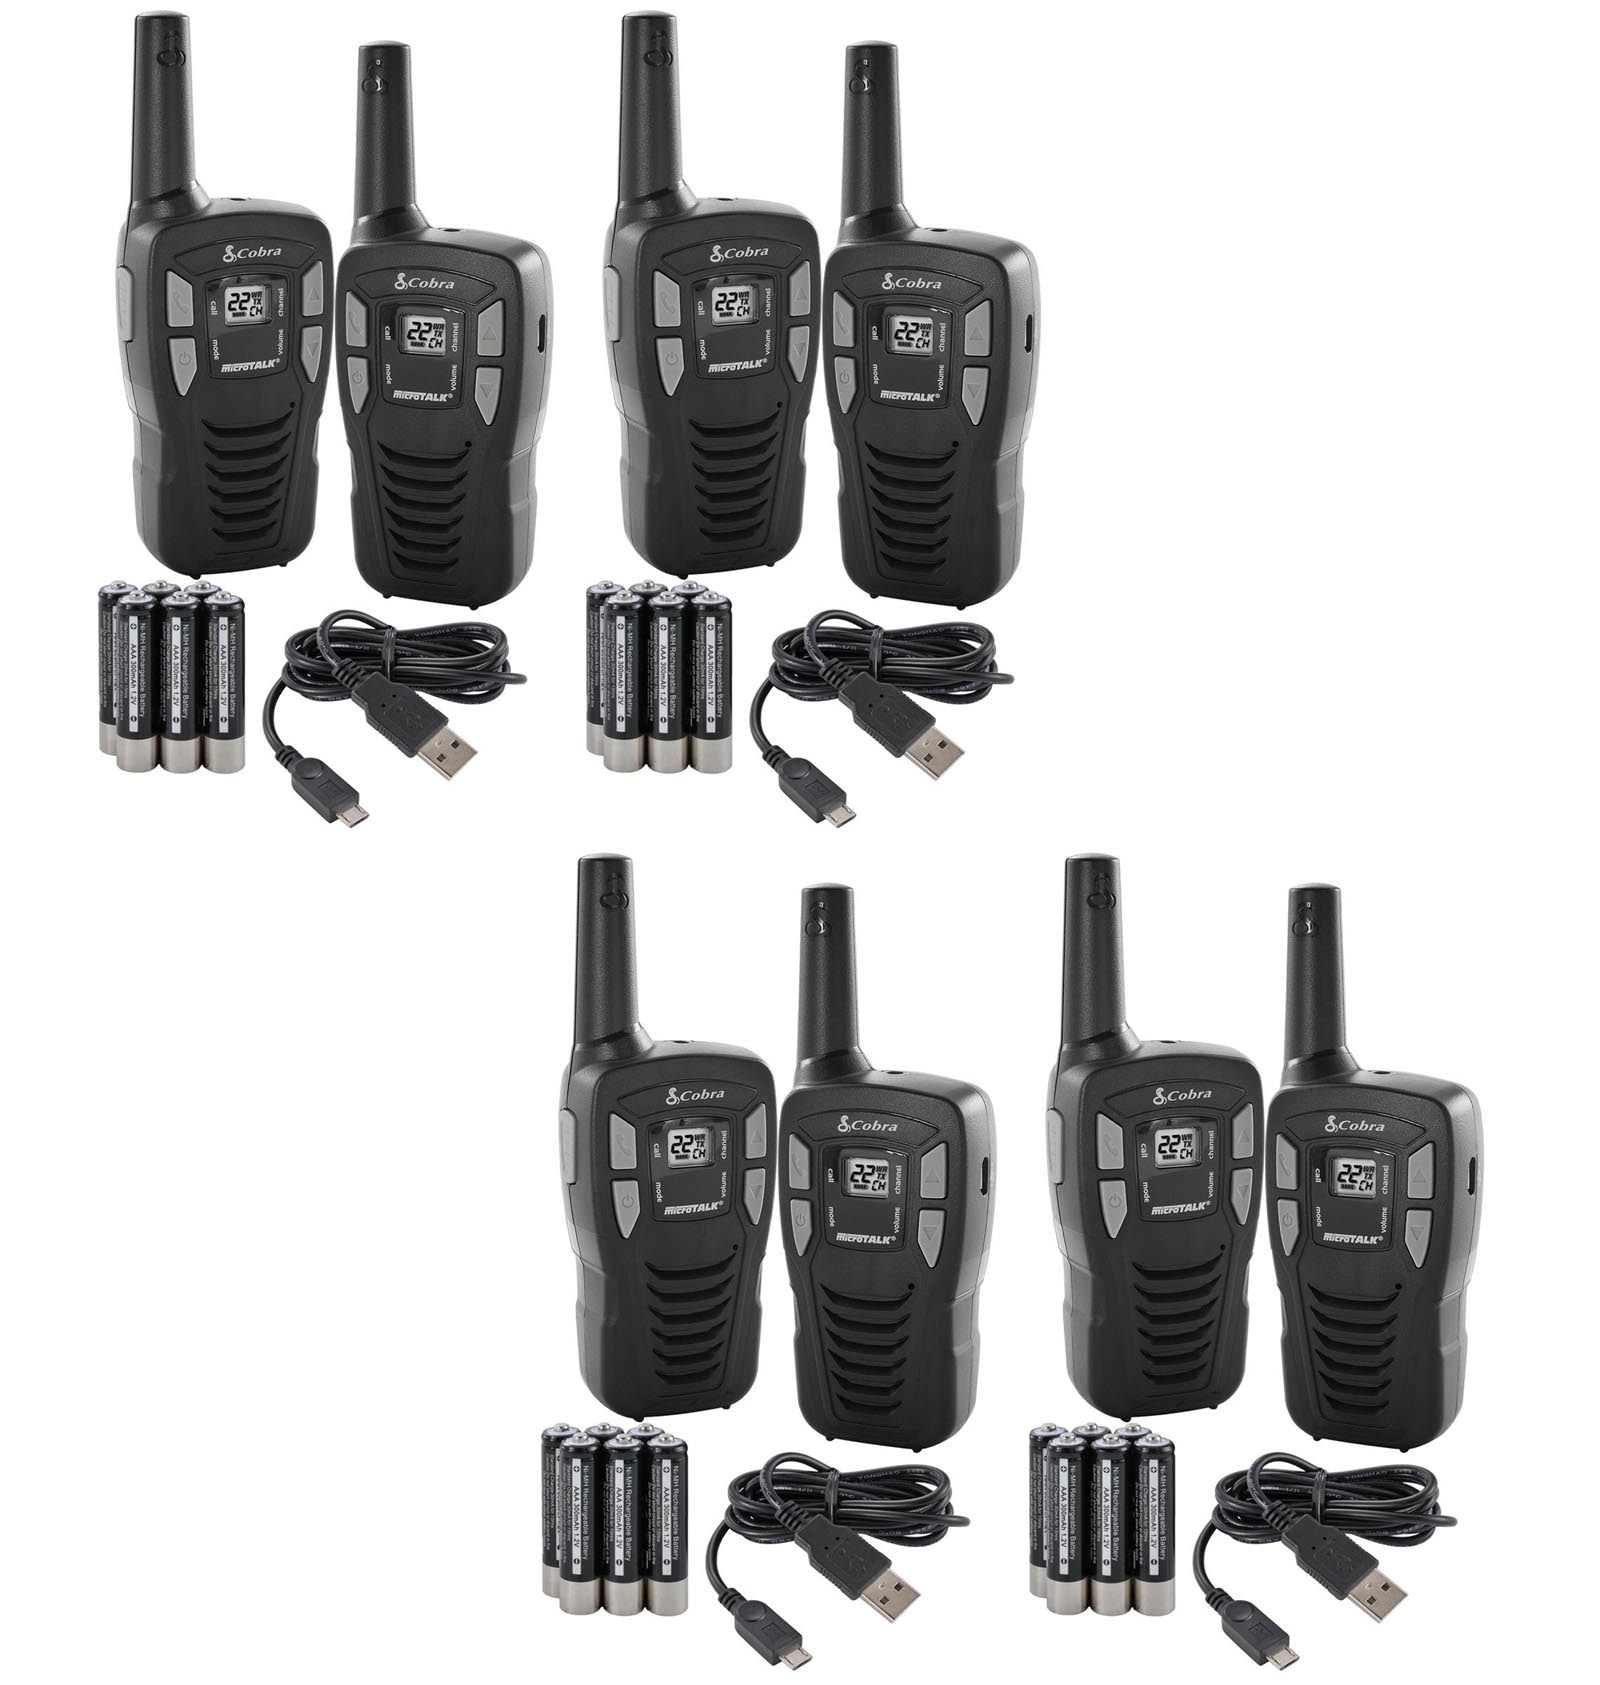 New! (8) COBRA CXT145 MicroTalk 16 Mile 22 Channel Walkie Talkie 2-Way Radios! by Cobra